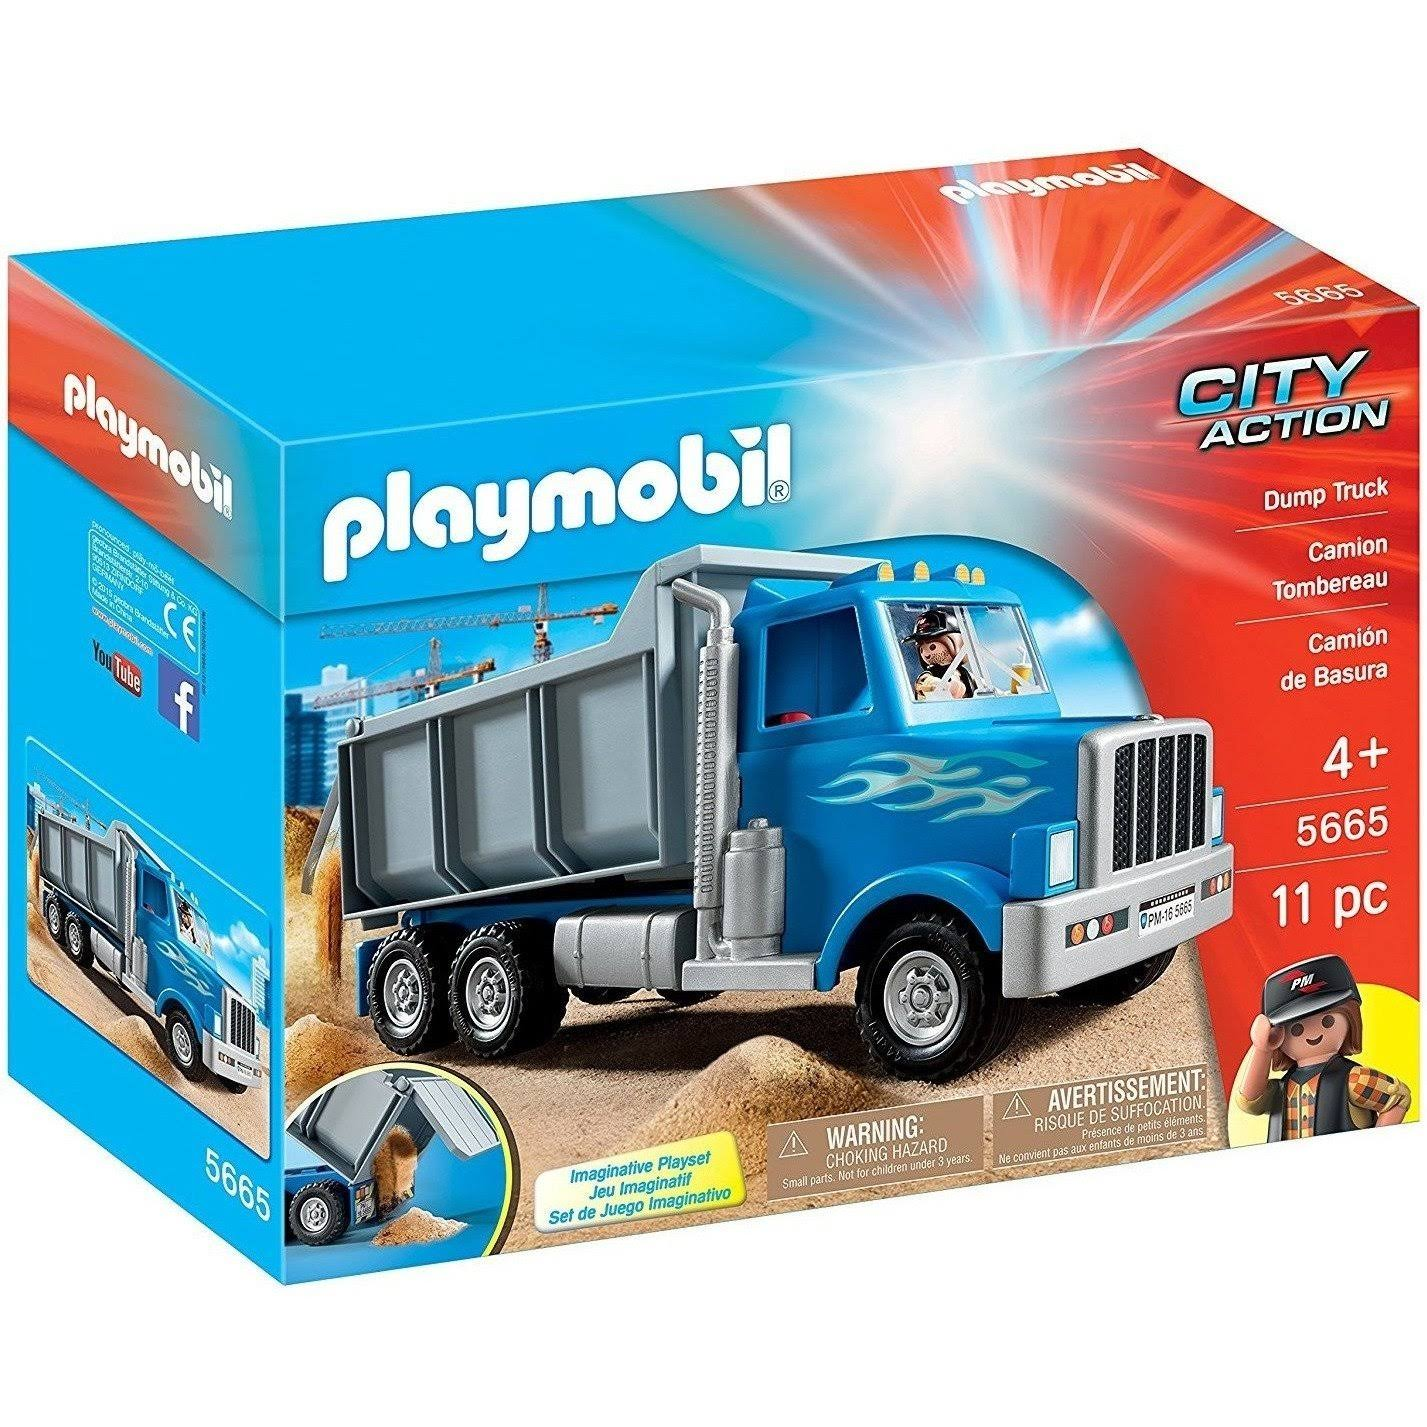 Playmobil City Action Dump Truck Playset